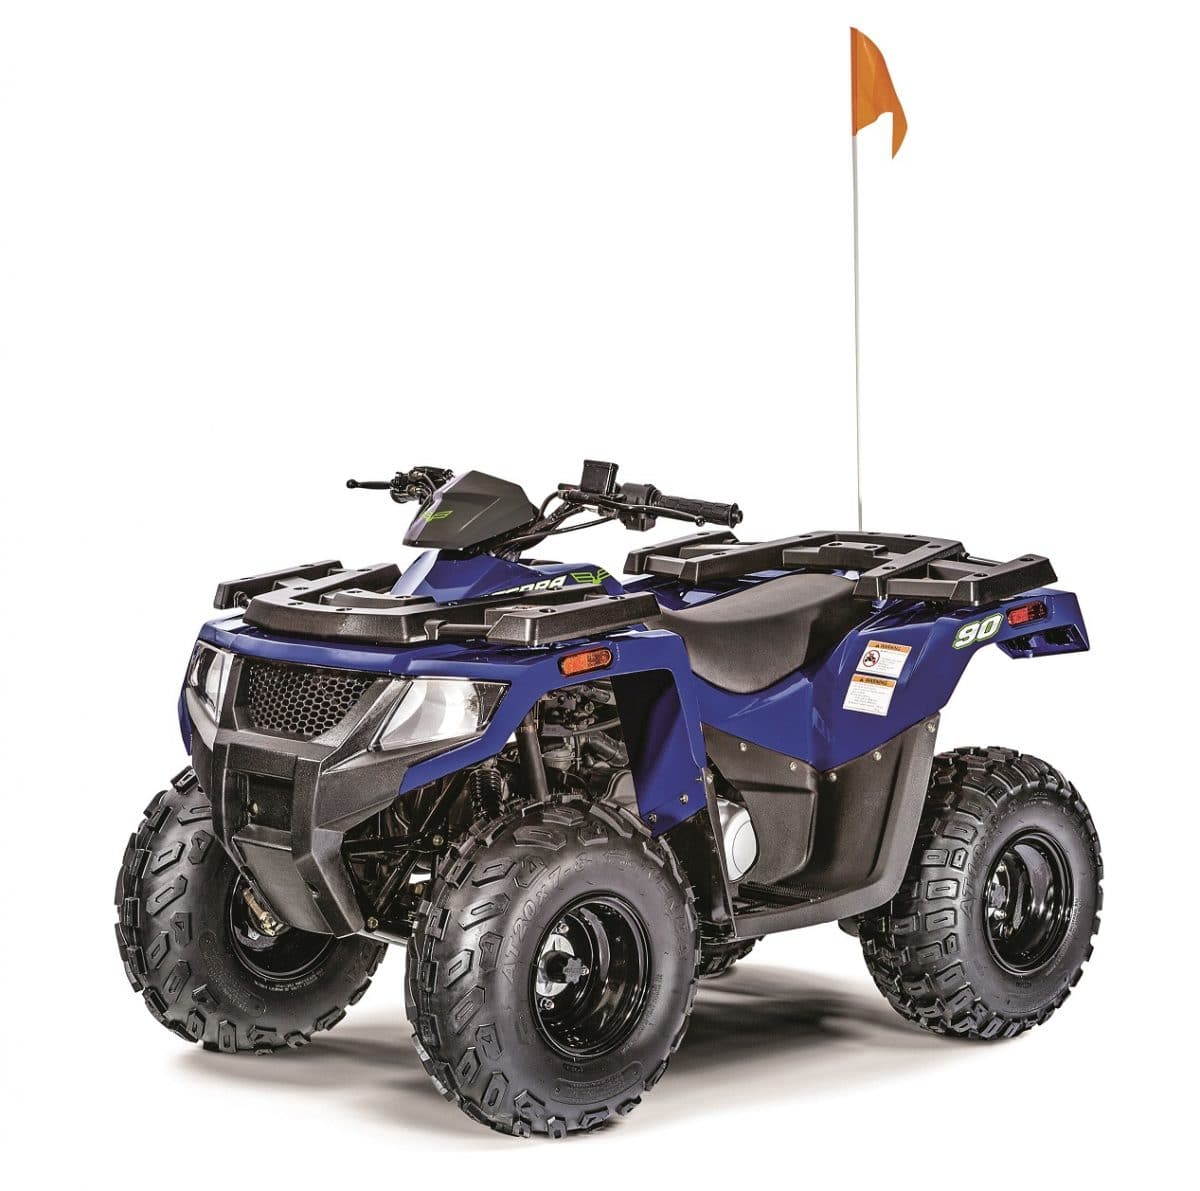 hight resolution of displacement 90cc transmission cvt w reverse final drive chain fuel capacity 1 5 gal wheelbase 38 4 length width height 58 4 34 5 37 2